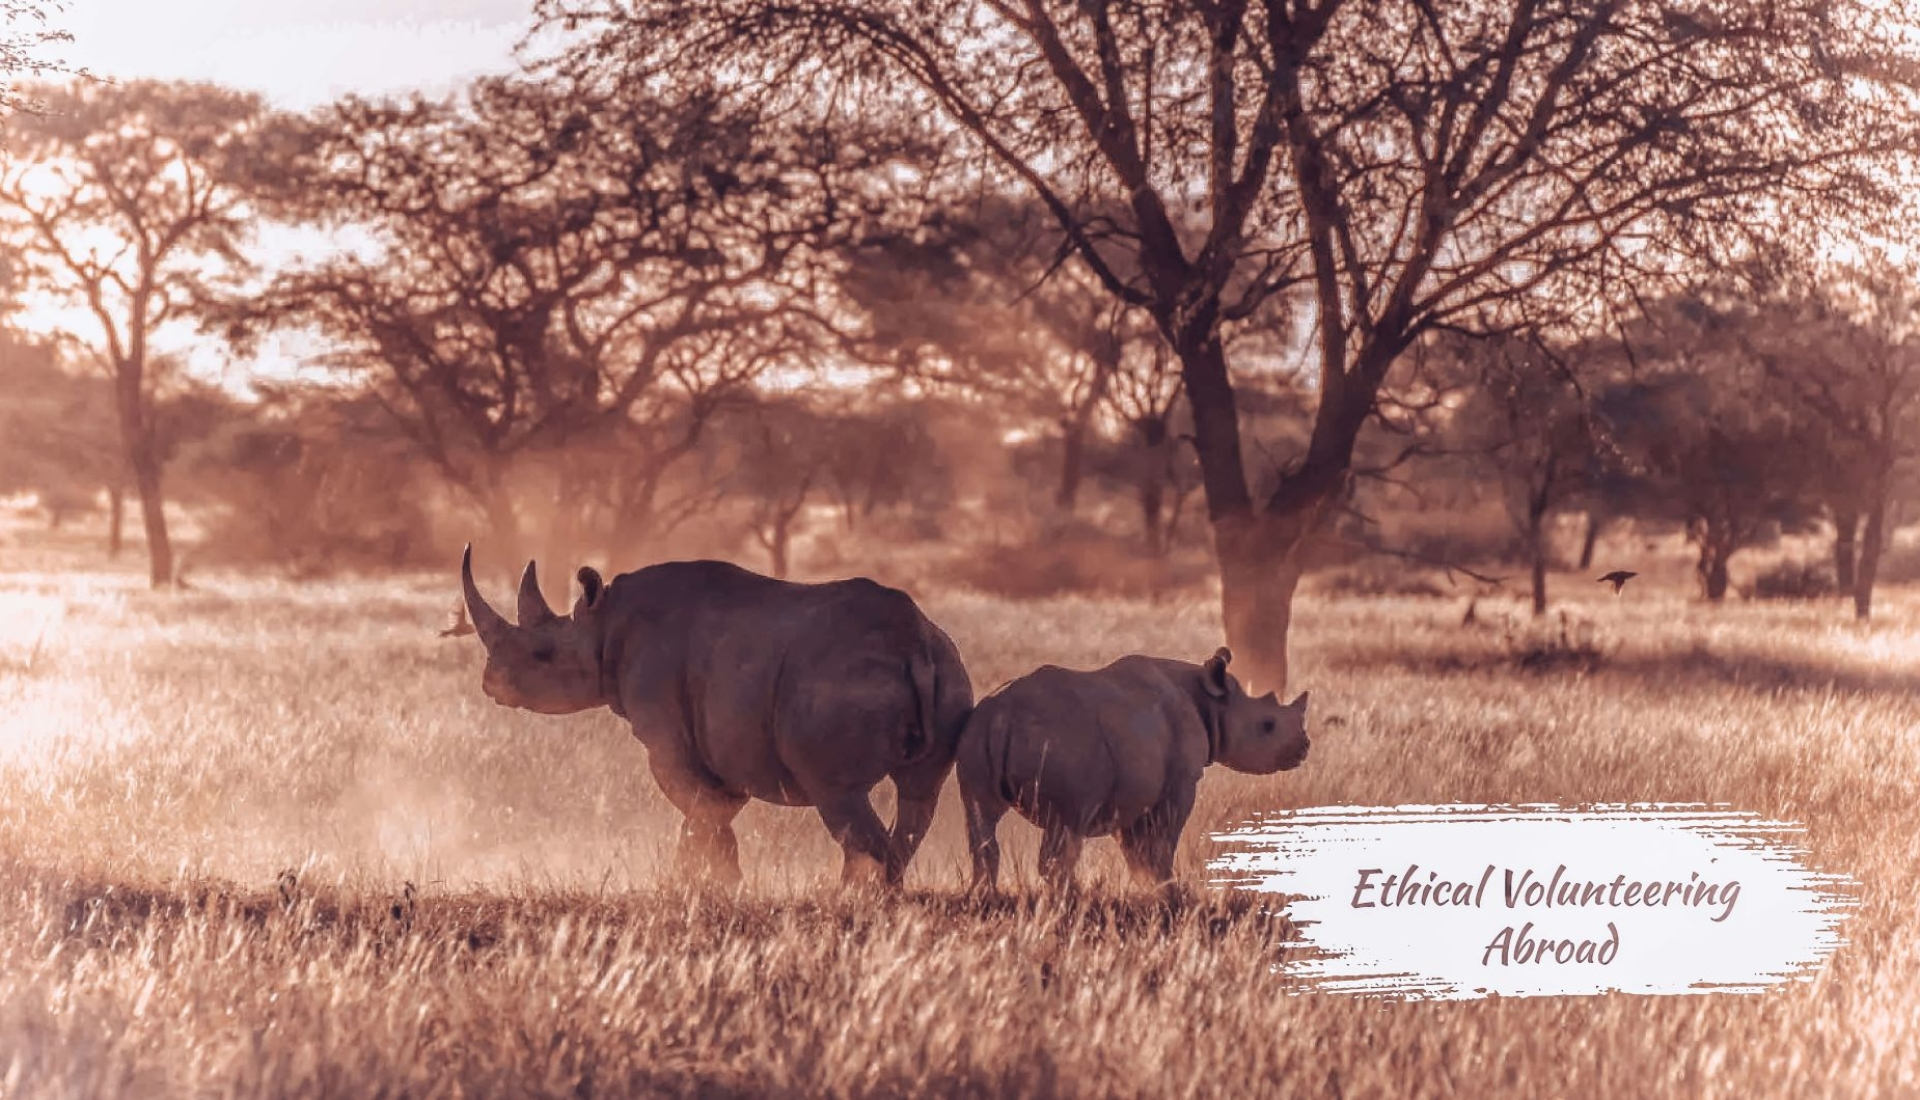 Ethical-volunteering-abroad-animal-sanctuary-rhinos